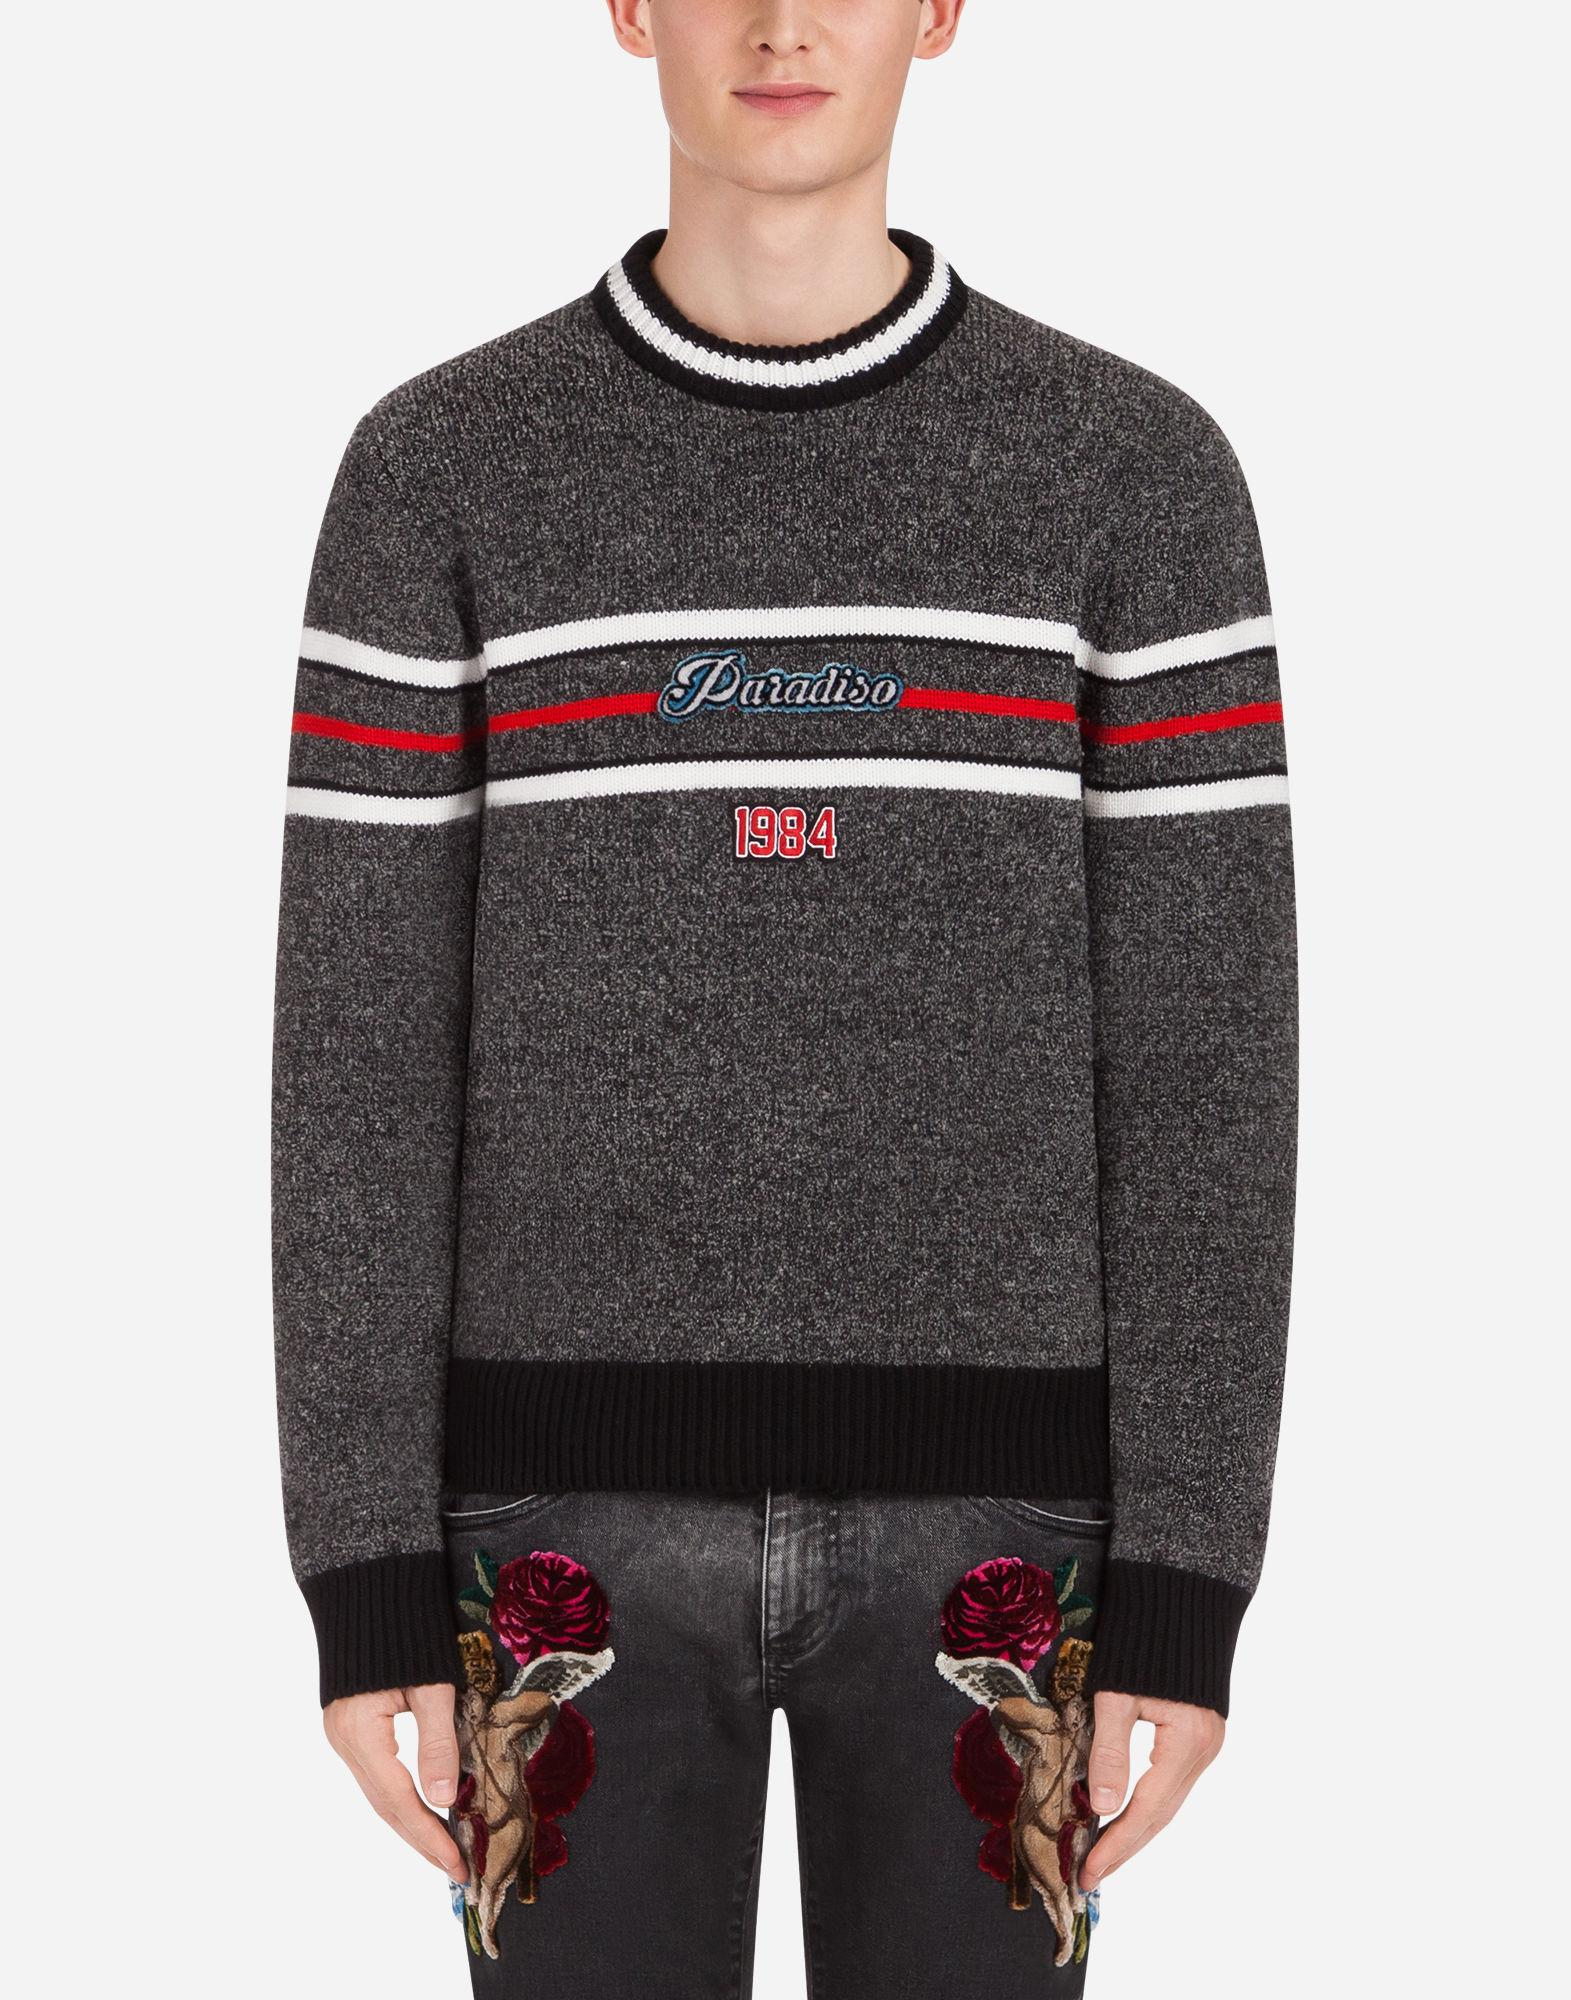 650da29db878 Lyst - Dolce   Gabbana Blended Wool Knit With Patch in Gray for Men